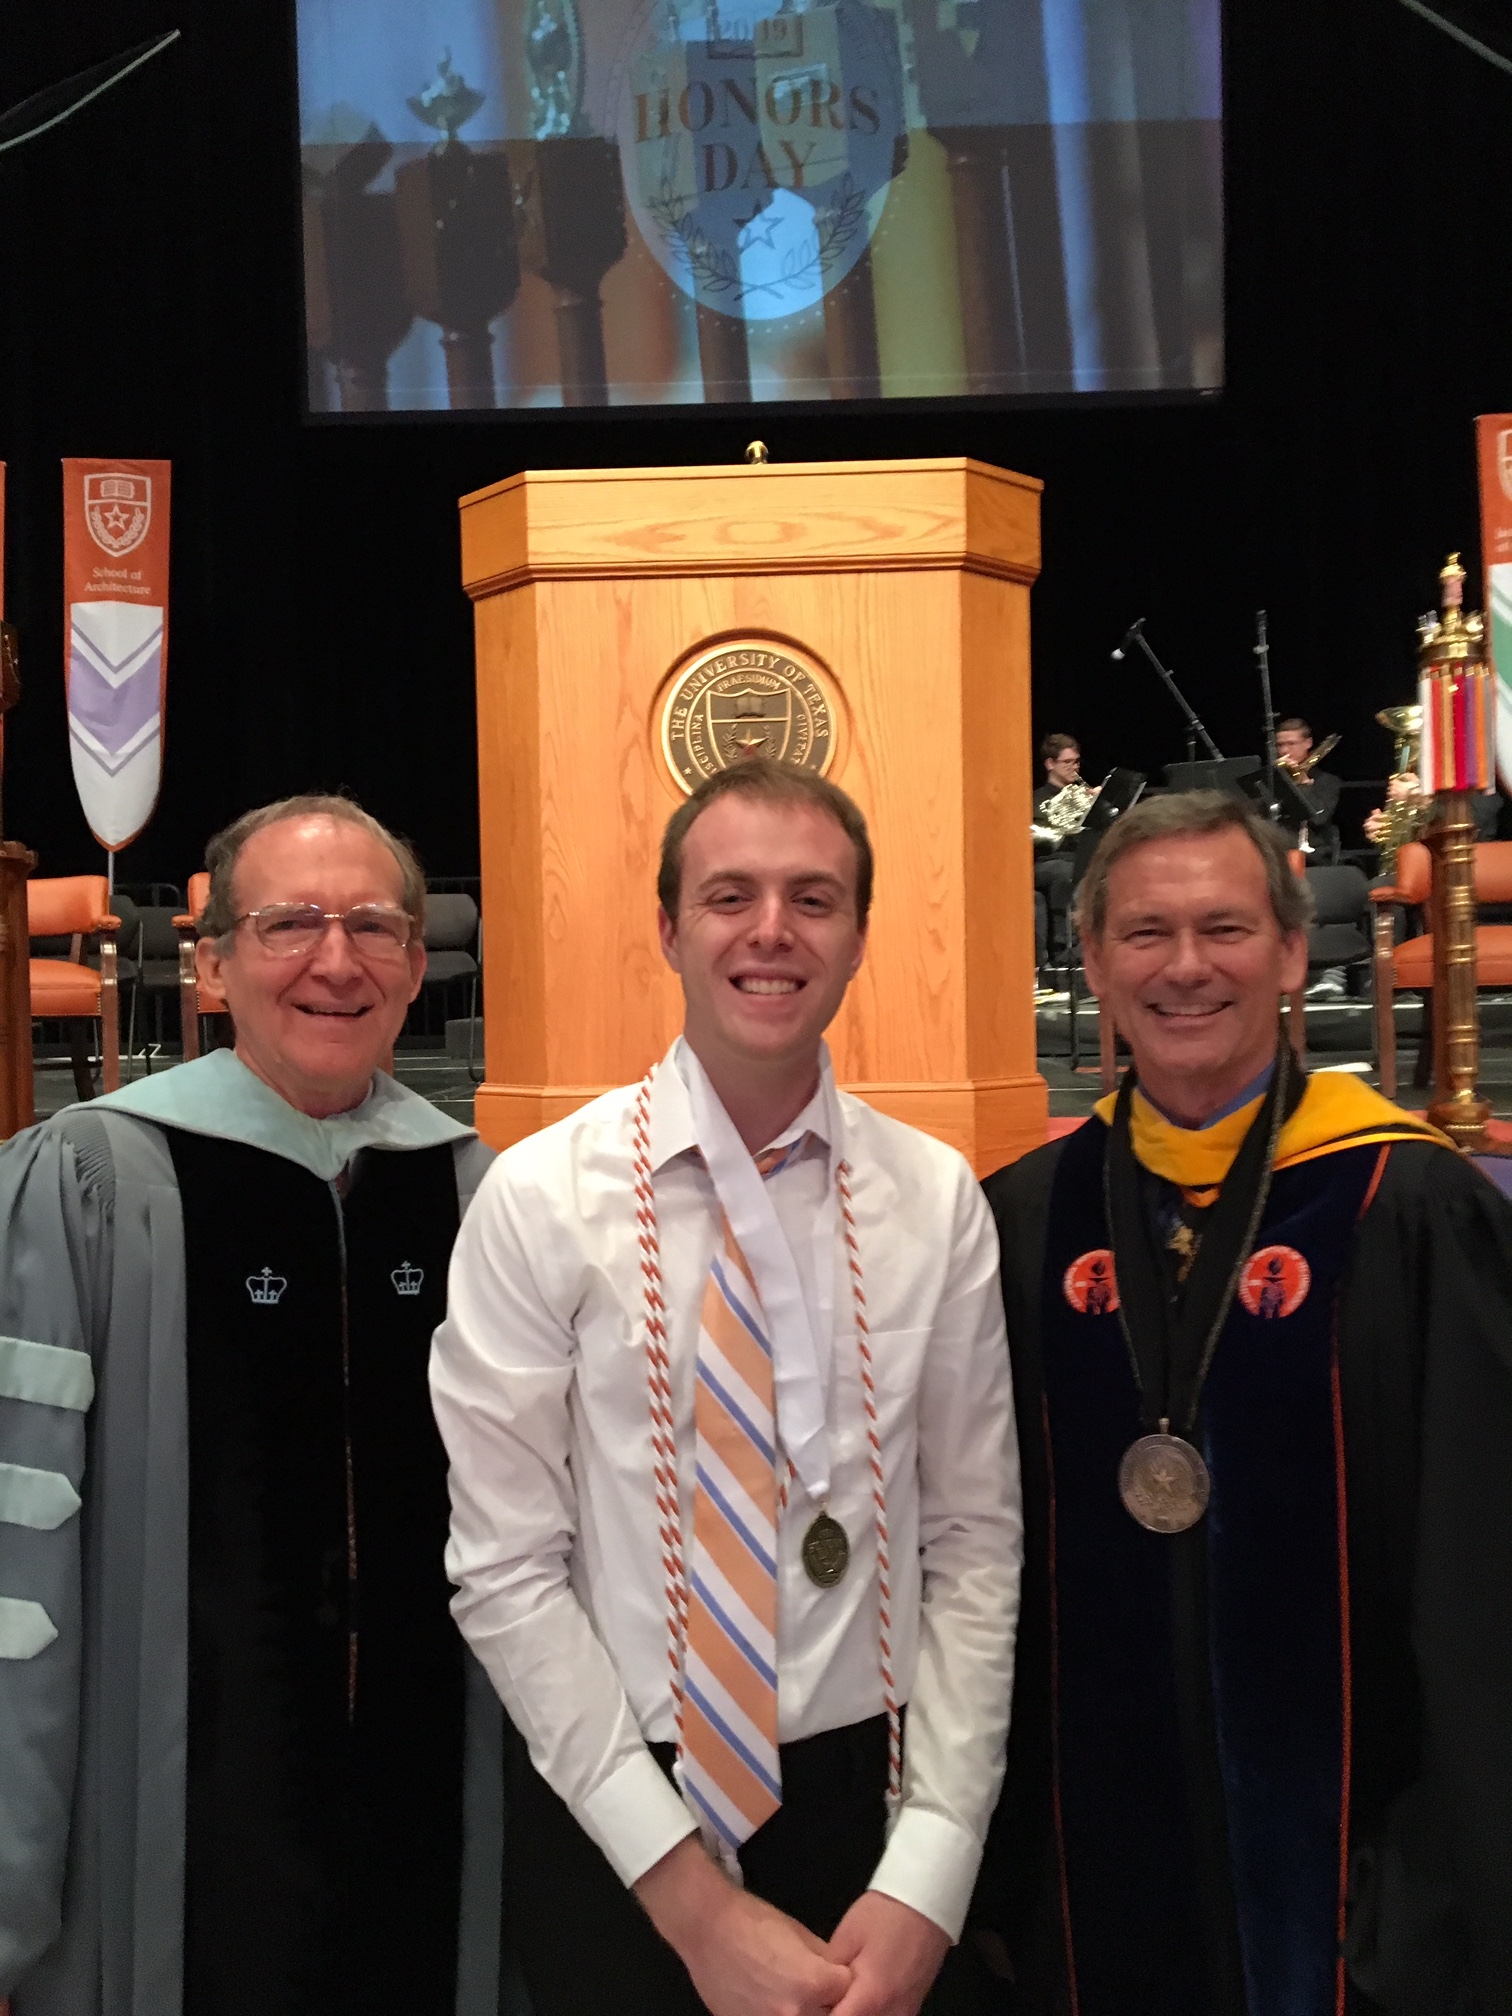 Nathan Blank with Dean Brent Iverson and Associate Dean Larry Abraham